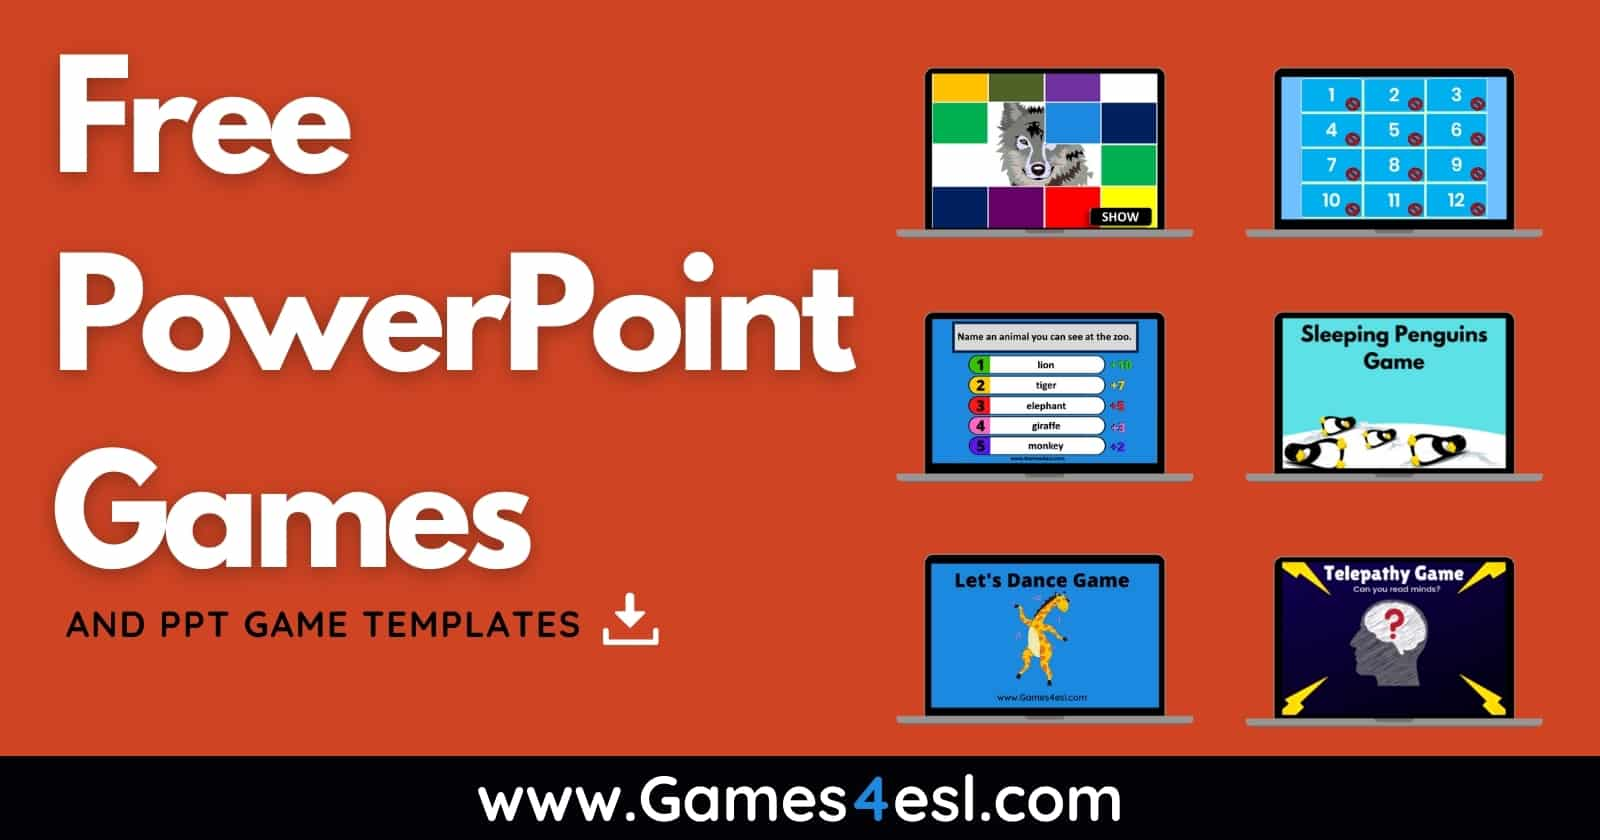 Free Powerpoint Games And Templates